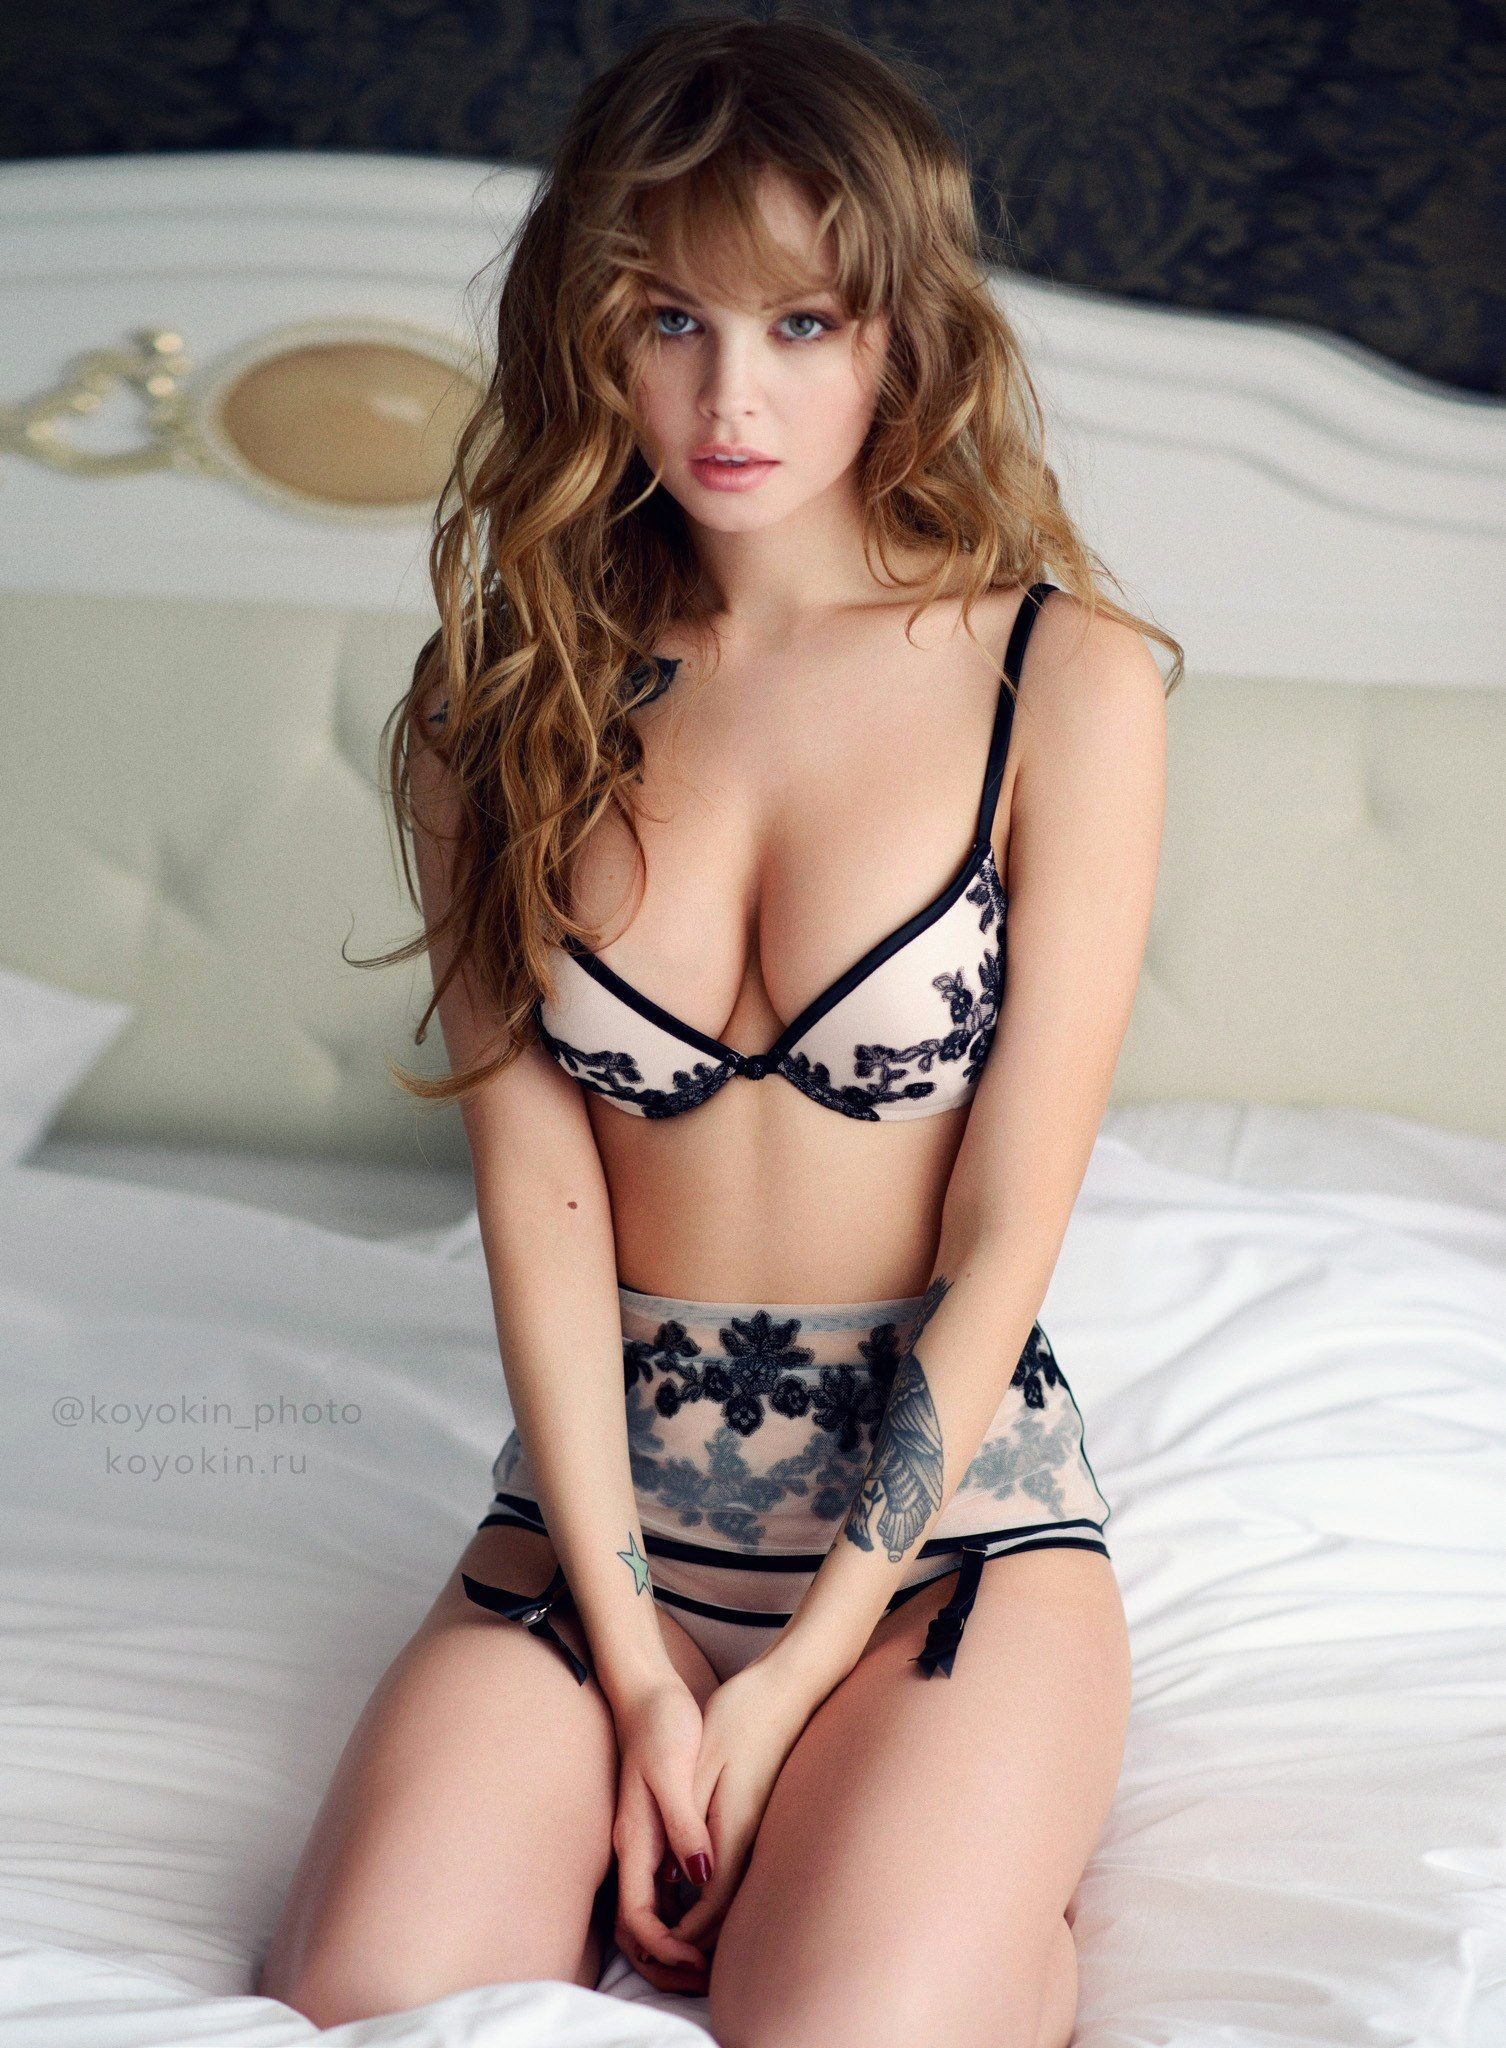 VIDEO Claudine Longet,Elle fanning autumn fashion ideas nyc Hot pics & movies NSFW Lorna Fitzgerald,Topless pics of holly peers 2